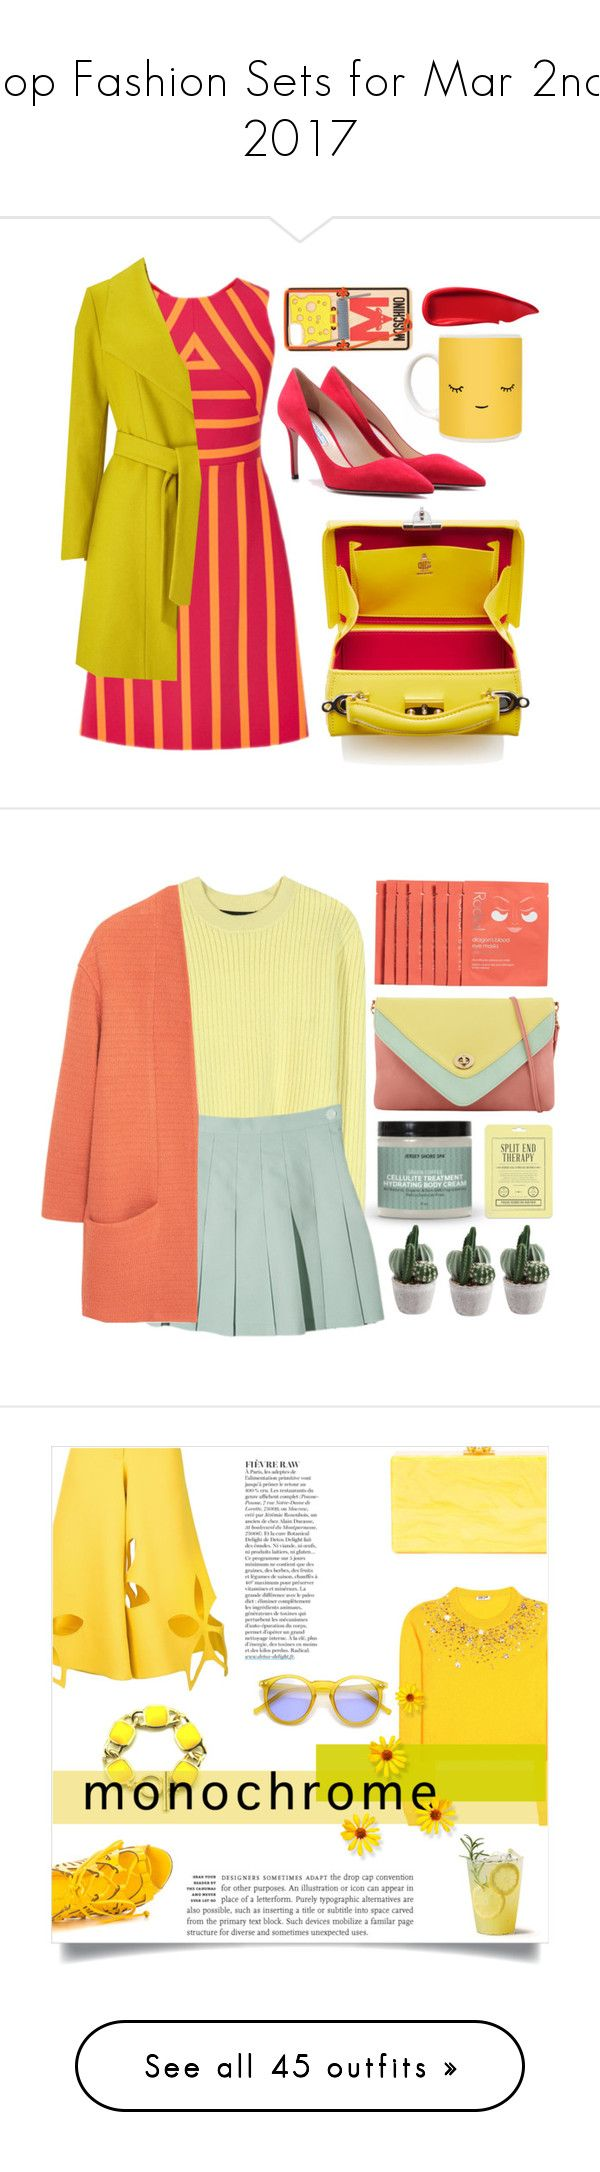 """""""Top Fashion Sets for Mar 2nd, 2017"""" by polyvore ❤ liked on Polyvore featuring Windsmoor, Prada, Moschino, Sisley, ALDO, Proenza Schouler, MANGO, Love 21, Rodial and Miu Miu"""